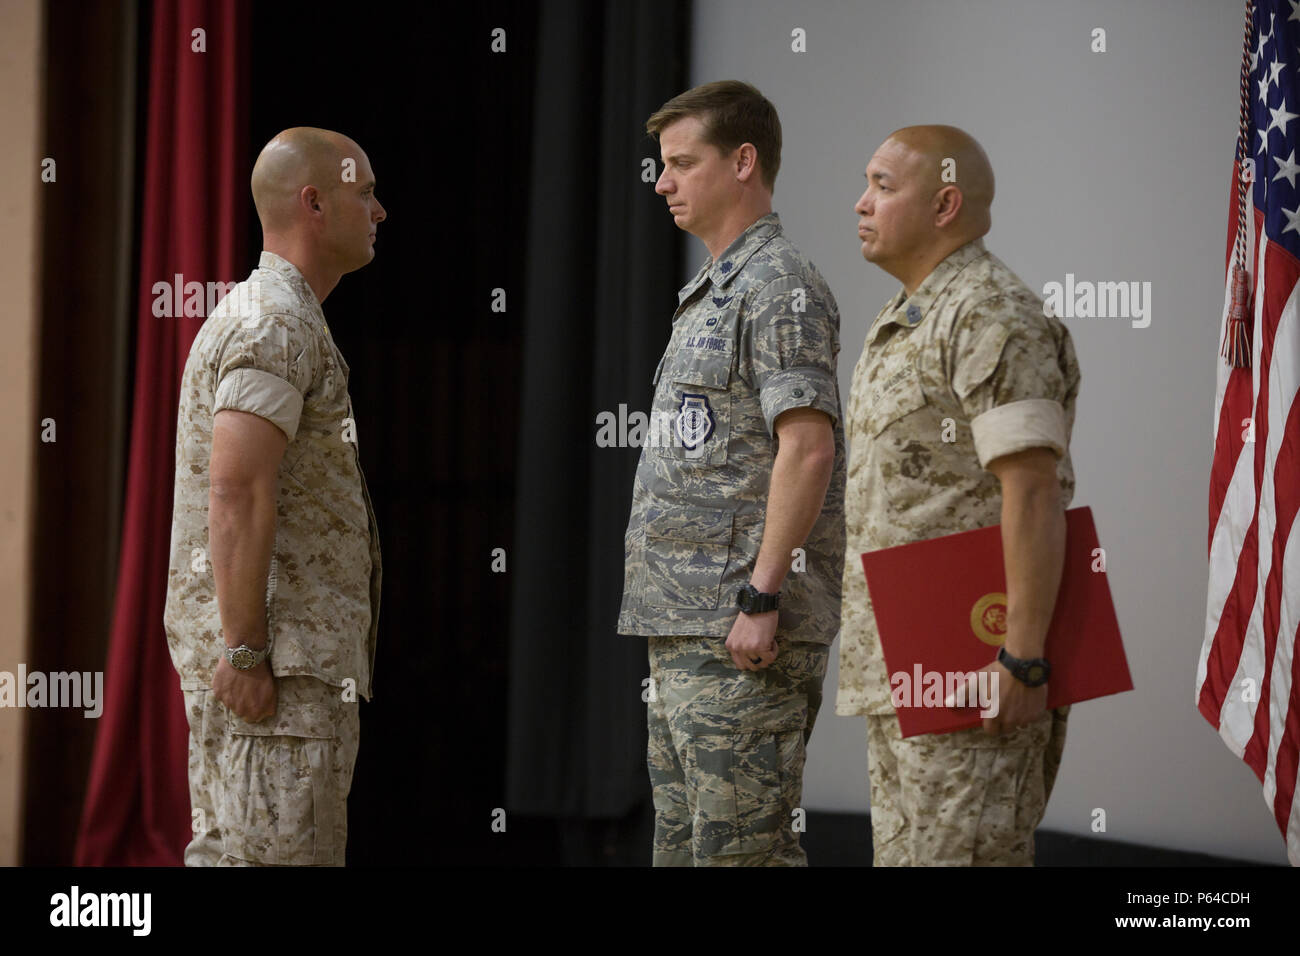 "U.S. Marine Corps Maj. Chad E. Craven, commanding officer, Delta Company, Communication Training Battalion, U.S. Air Force Lt. Col.  Russell ""Bones"" Cook, squadron commander, 563 Operations Support Squadron, and Master Gunnery Sgt. Jerry Romero, senior enlisted advisor, Company D, CTB, stand at the position of attention for the reading of Craven's letter of appreciation from President Barack Obama  during Craven's retirement ceremony at the base theater April 20, 2016. Craven retired after 24-years of honorable service. (Official Marine Corps photo by Cpl. Julio McGraw/Released) - Stock Image"